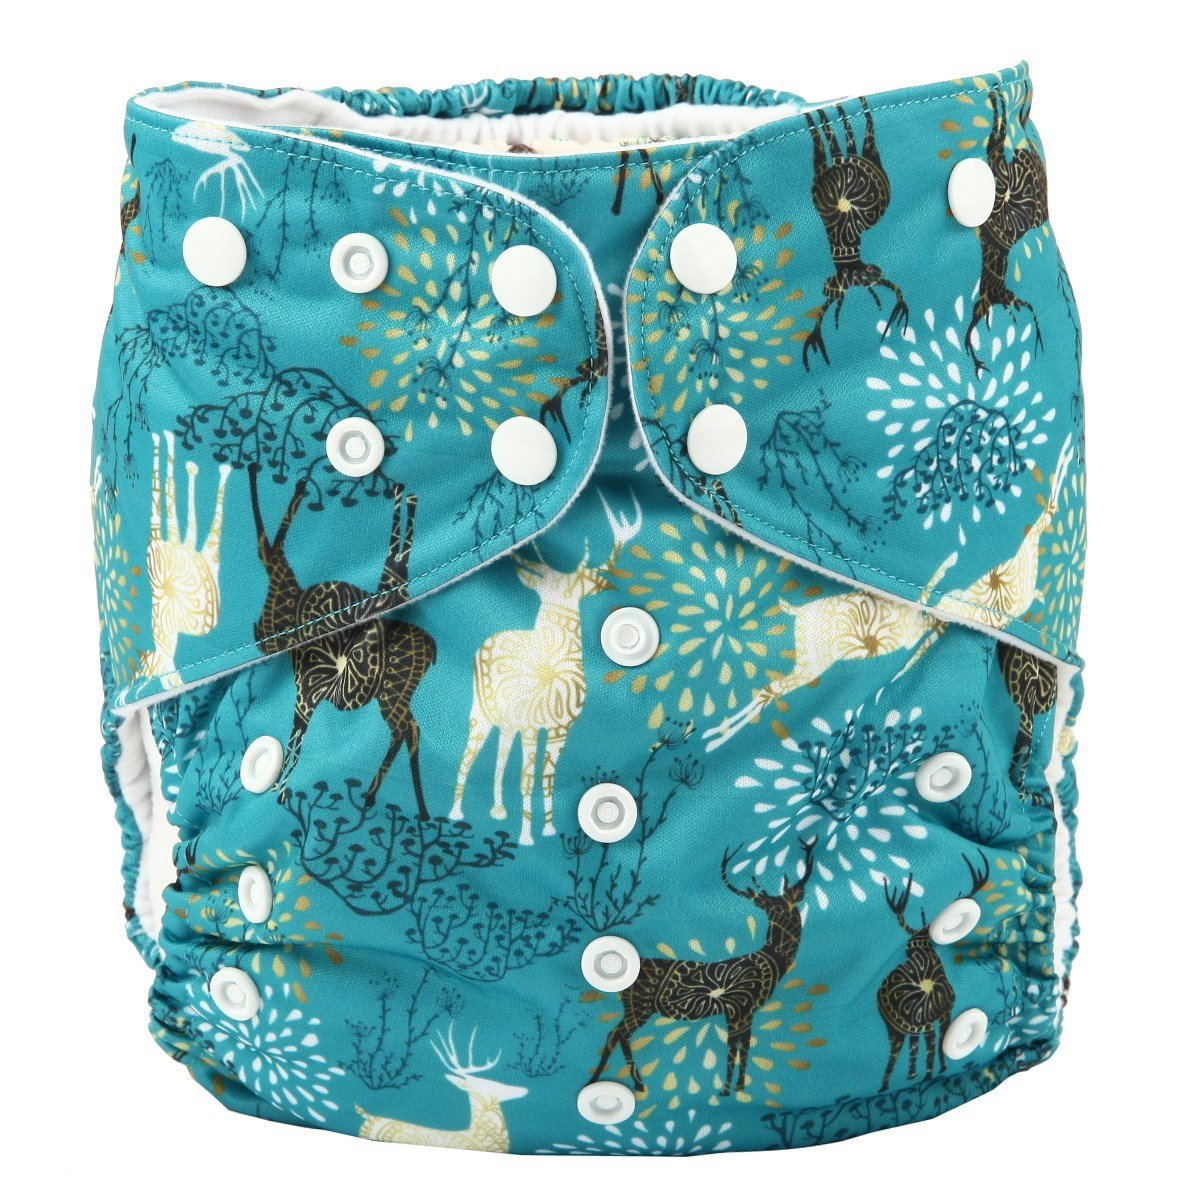 Sigzagor 2 to 7 years old Junior Big Cloth Diaper,Nappy,Pocket Reusable Washable,Baby Kids Toddler (Forest Deer) by Sigzagor